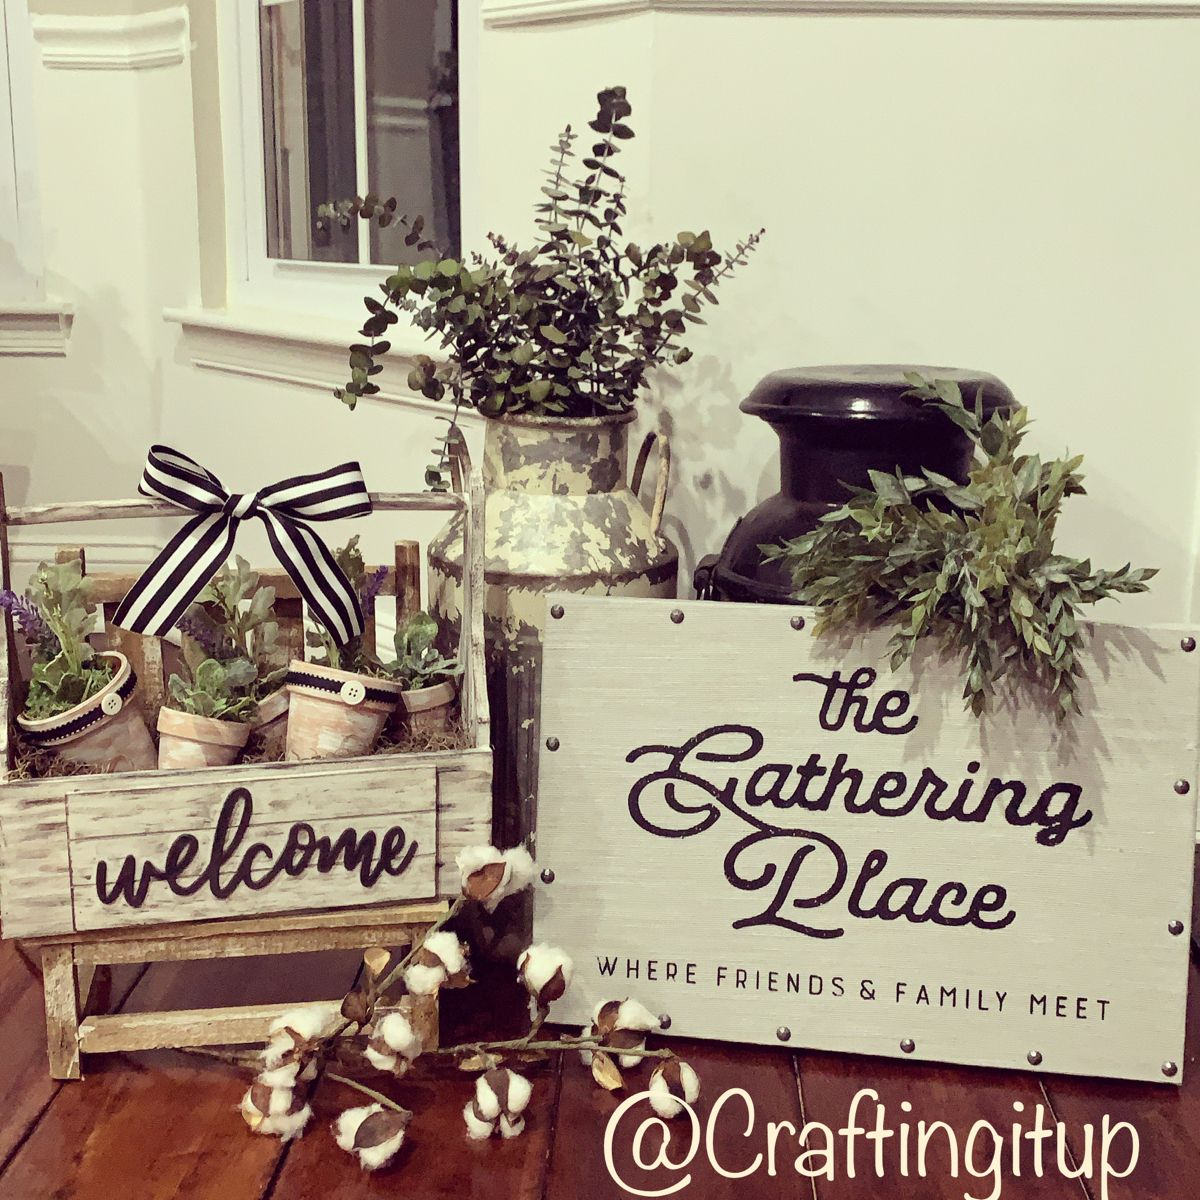 #chalkcouturedesigner #chalkcouture #chalkingwithcraftingitup #thegatheringplace #farmhousedecof #farmhousestyle #diy #diyhomedecor #diyprojects #obsessedwithgreenery #blackandwhitedecor #chalkwithme #askmehow #welcome #friends #family #summernails